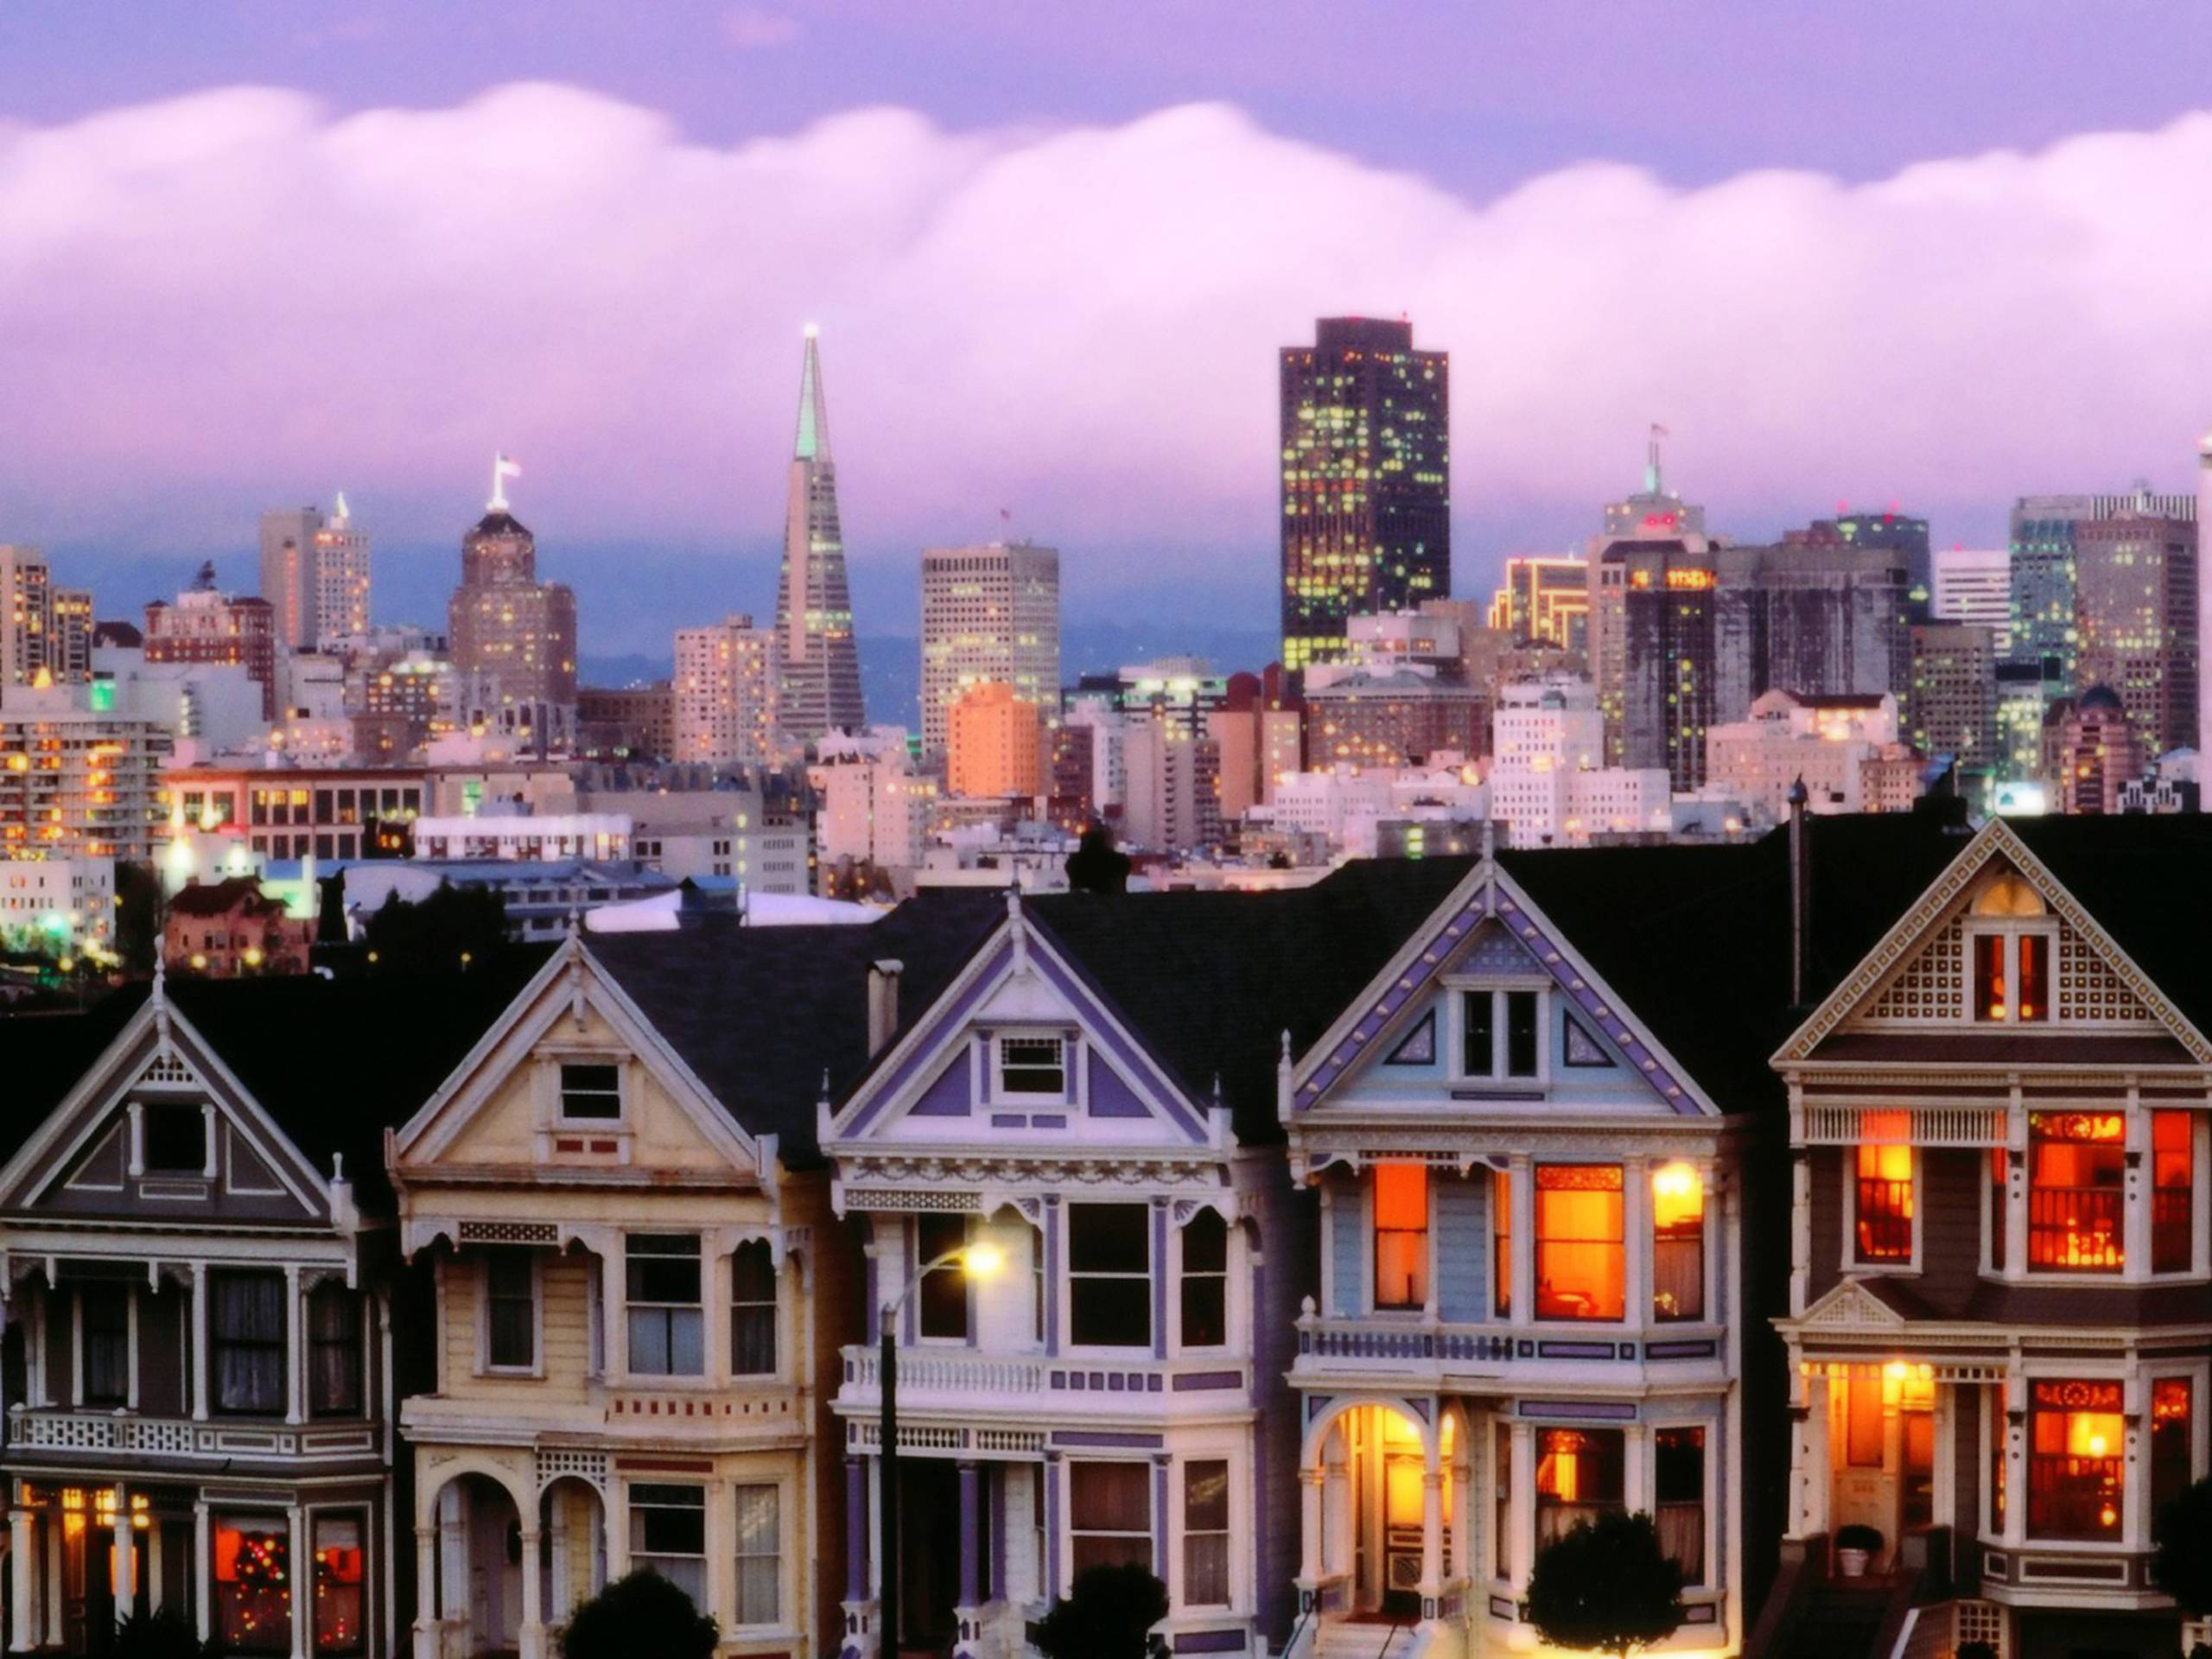 San Francisco TheWallpapers